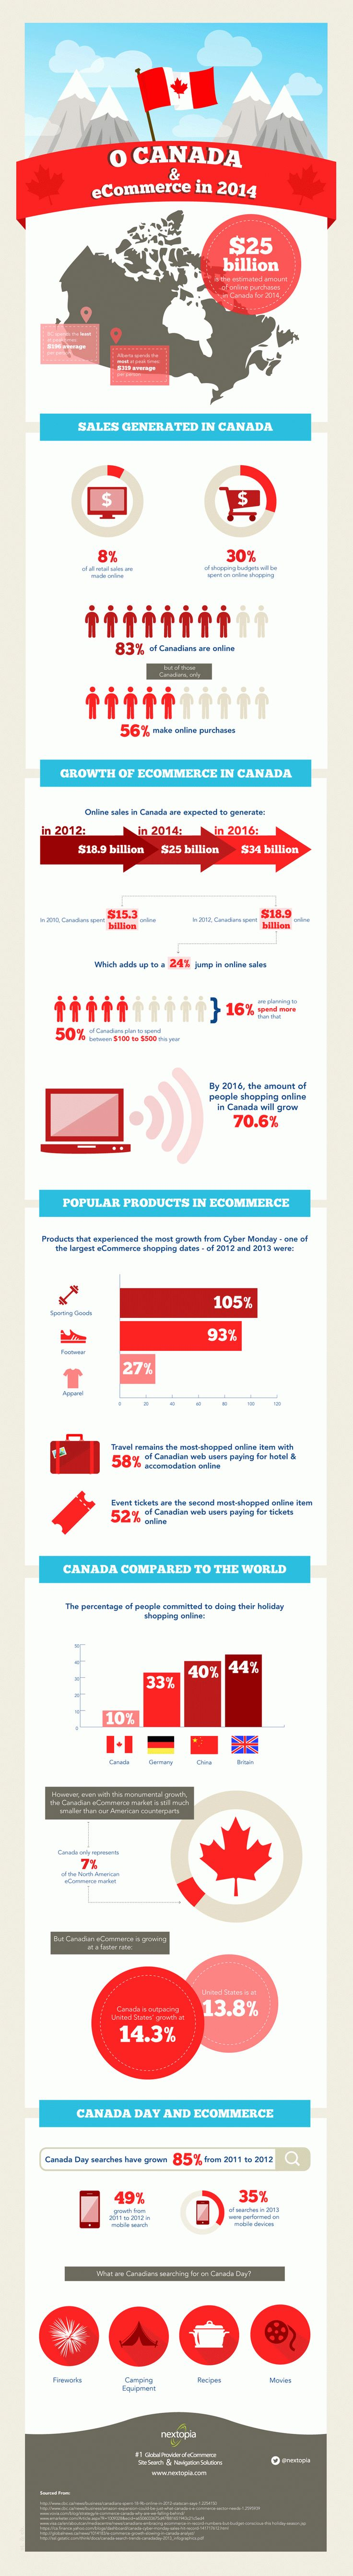 Ecommerce Canada en infographie : Informations statistiques 2014, 1ère solution Open Source Social Ecommerce B2B/B2C : ClicShopping